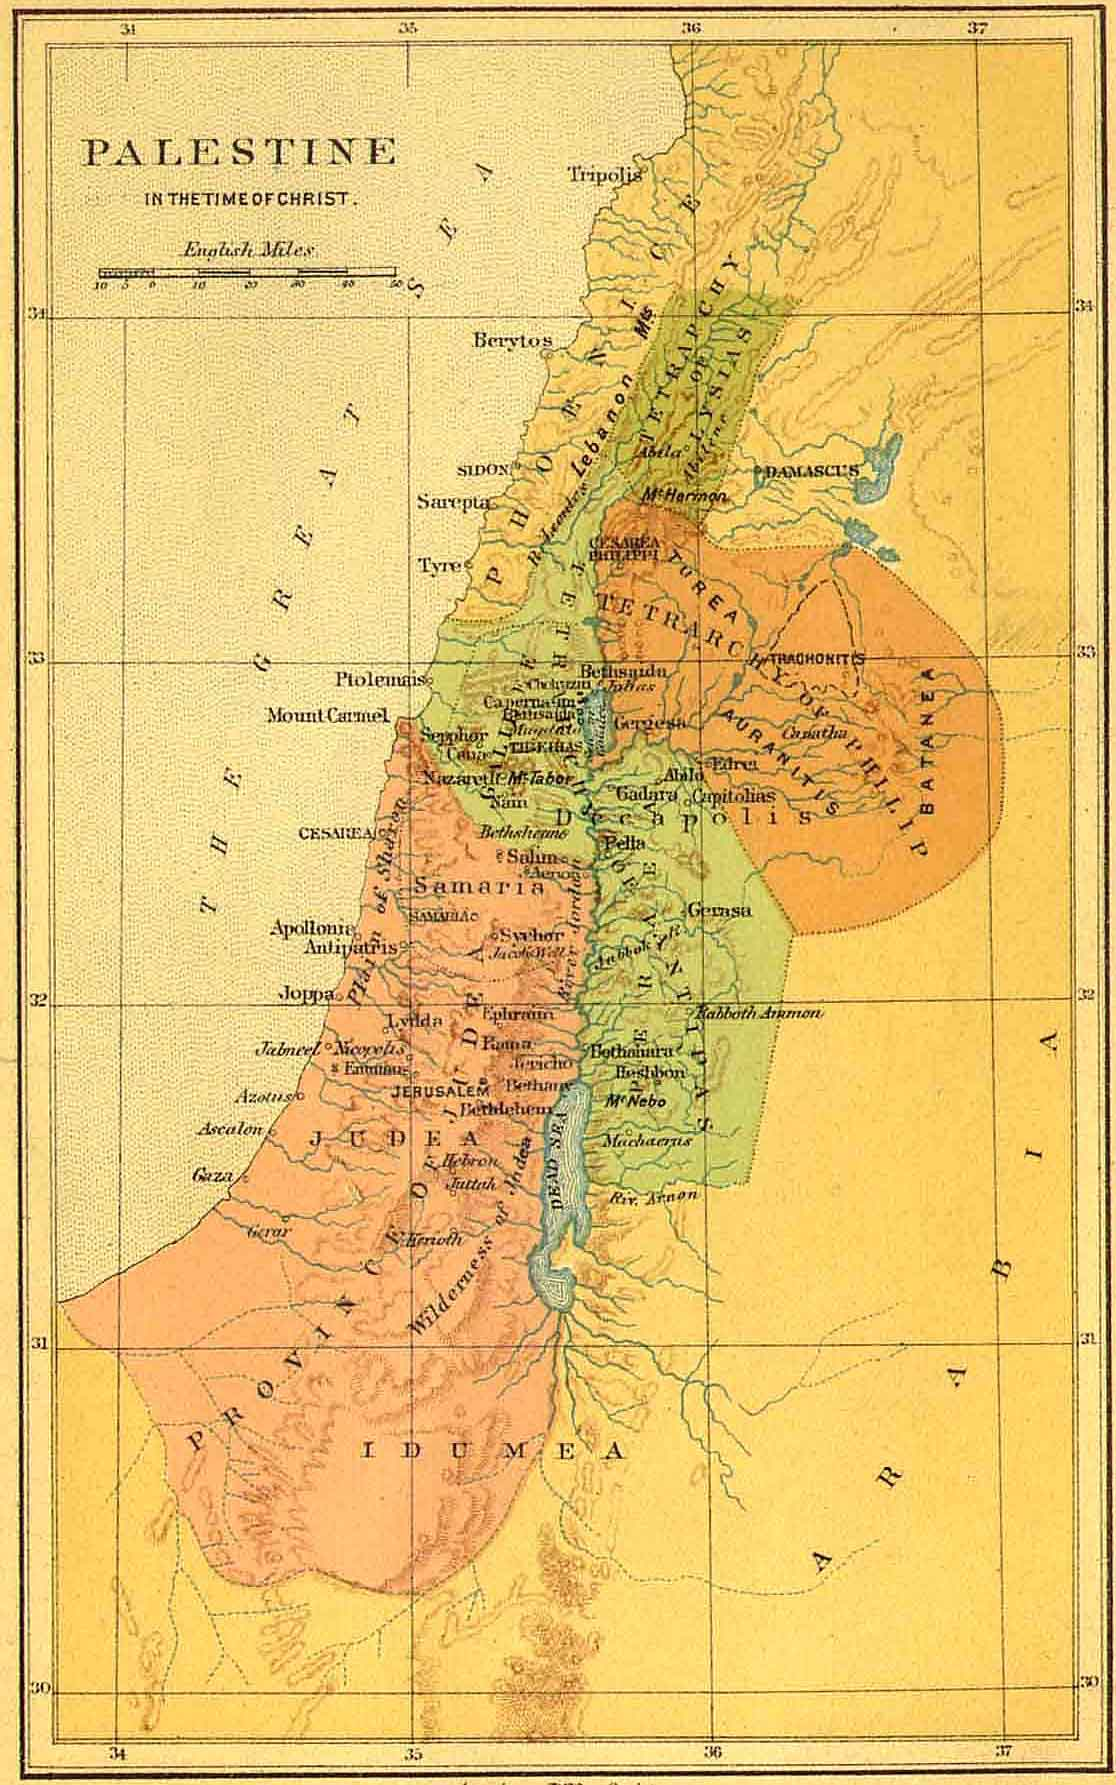 Bible Maps Bible Maps - Map of egypt in bible times